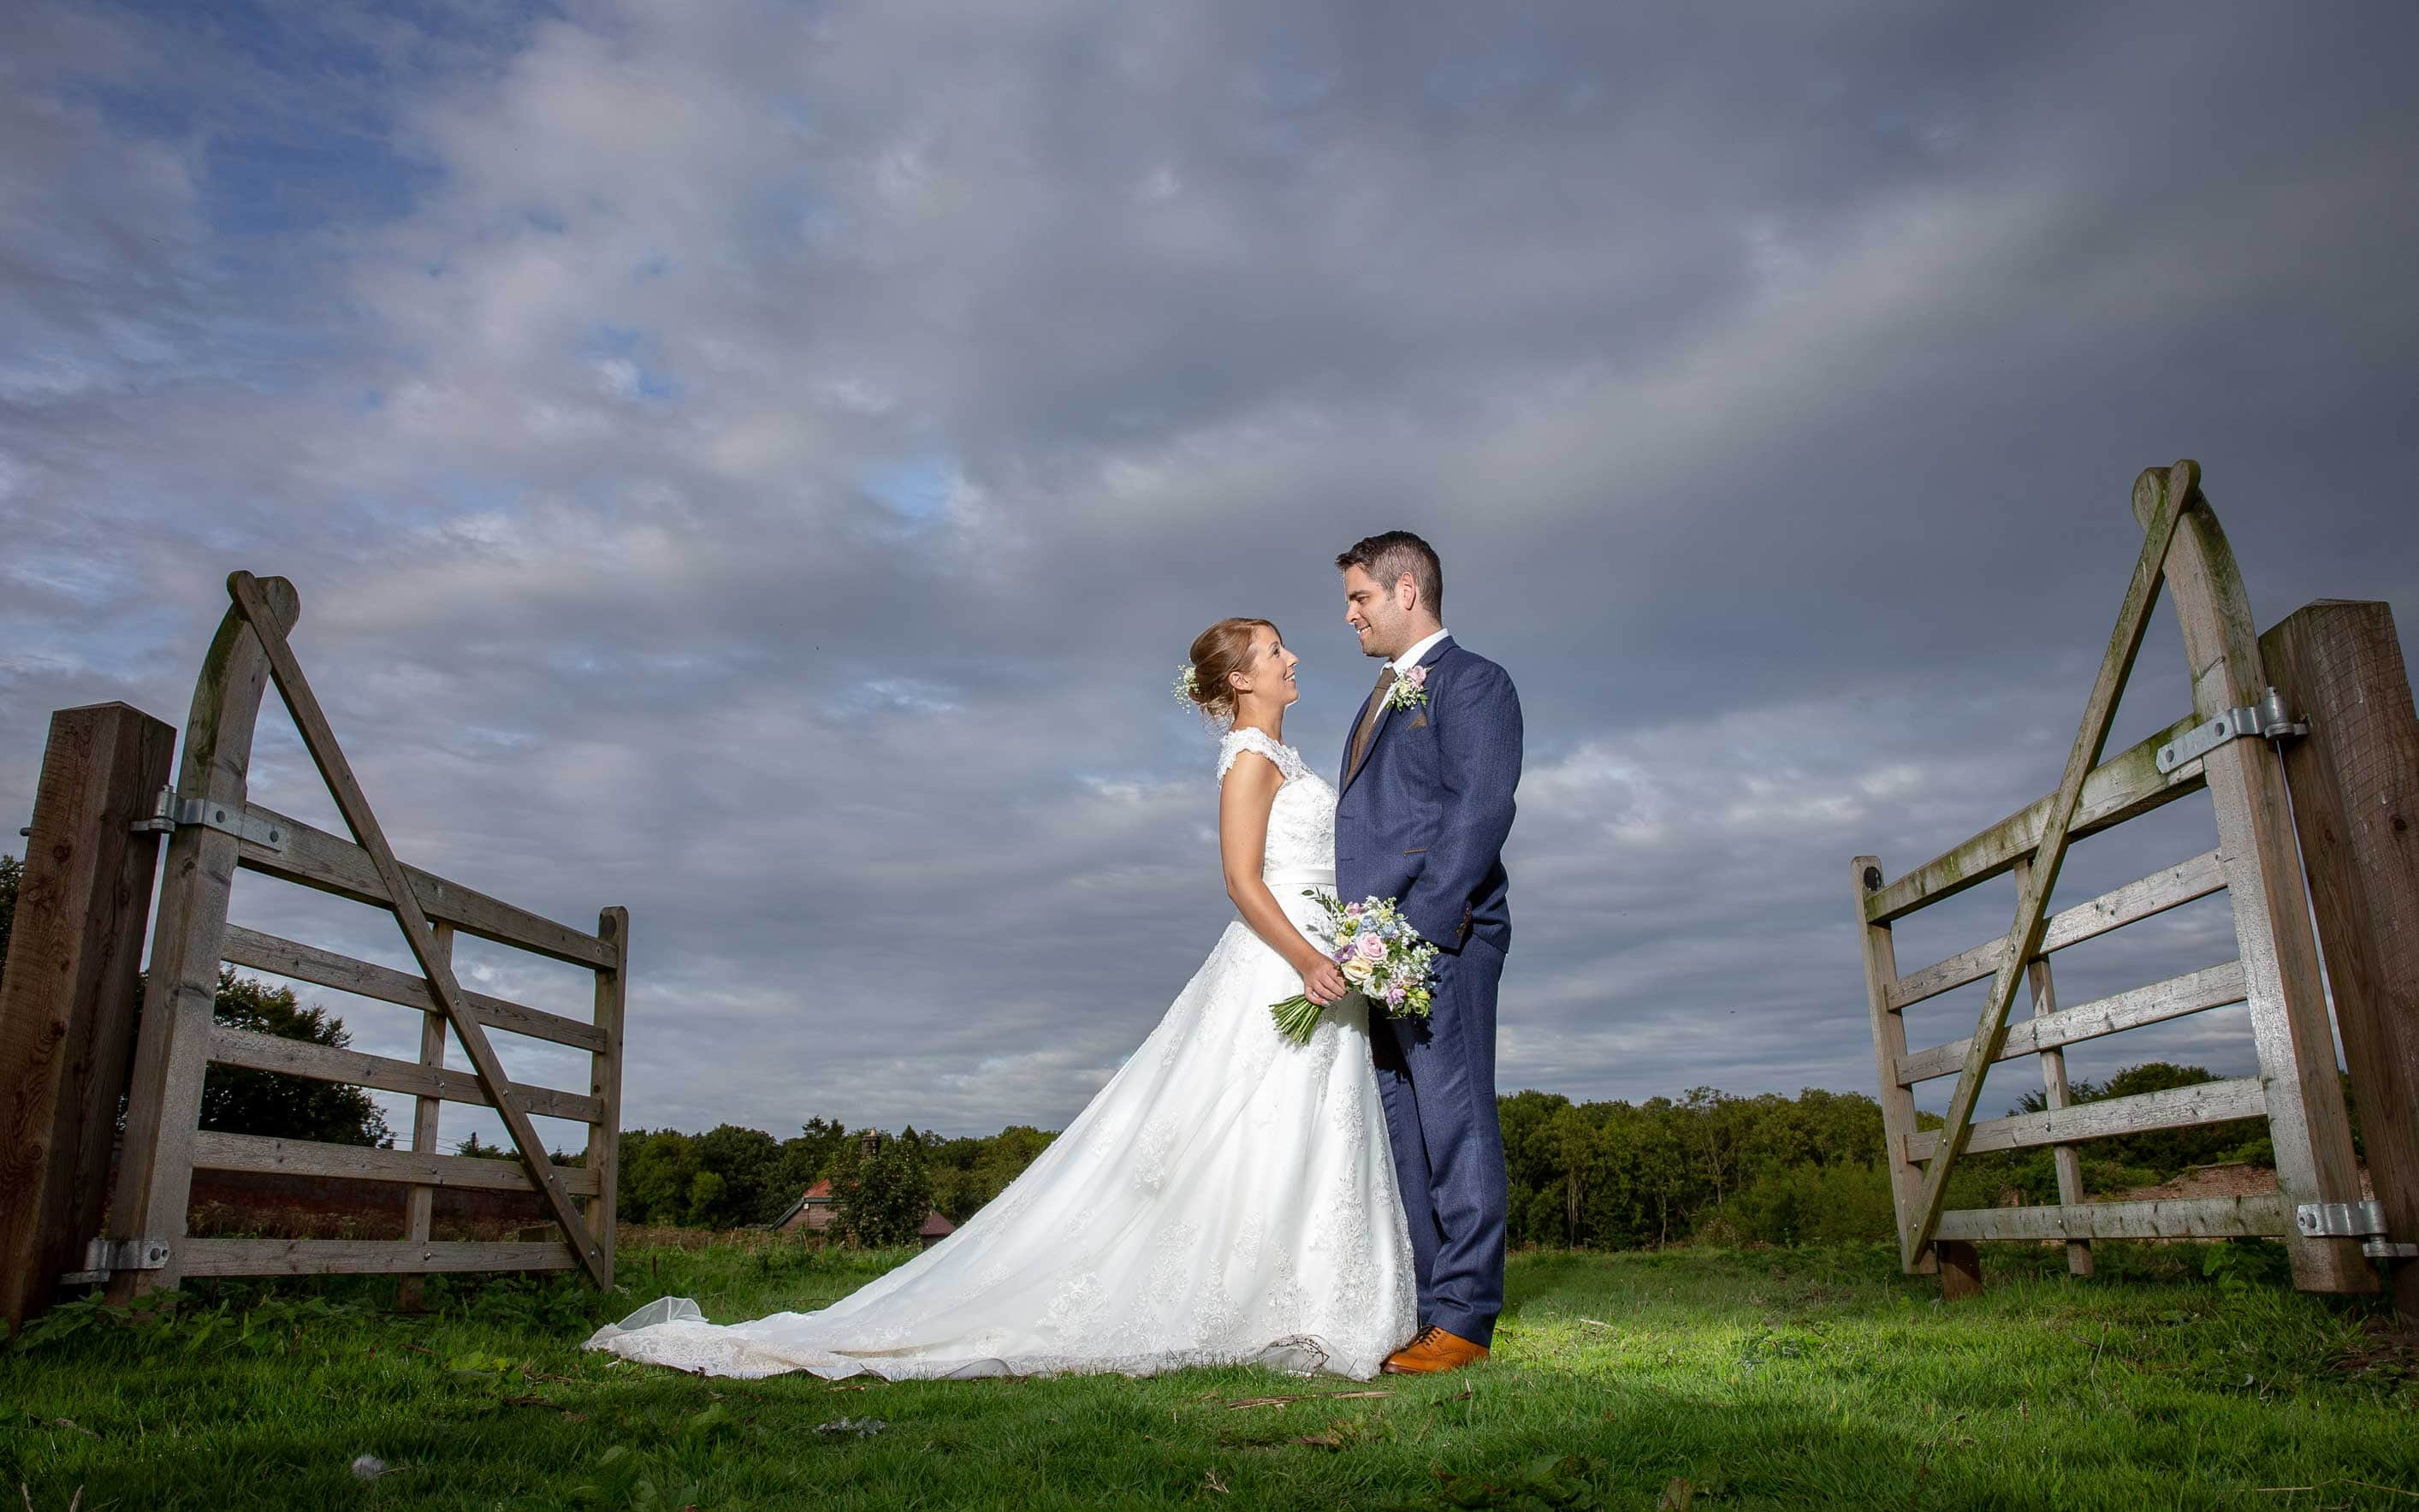 photo of the bride and groom near a fence